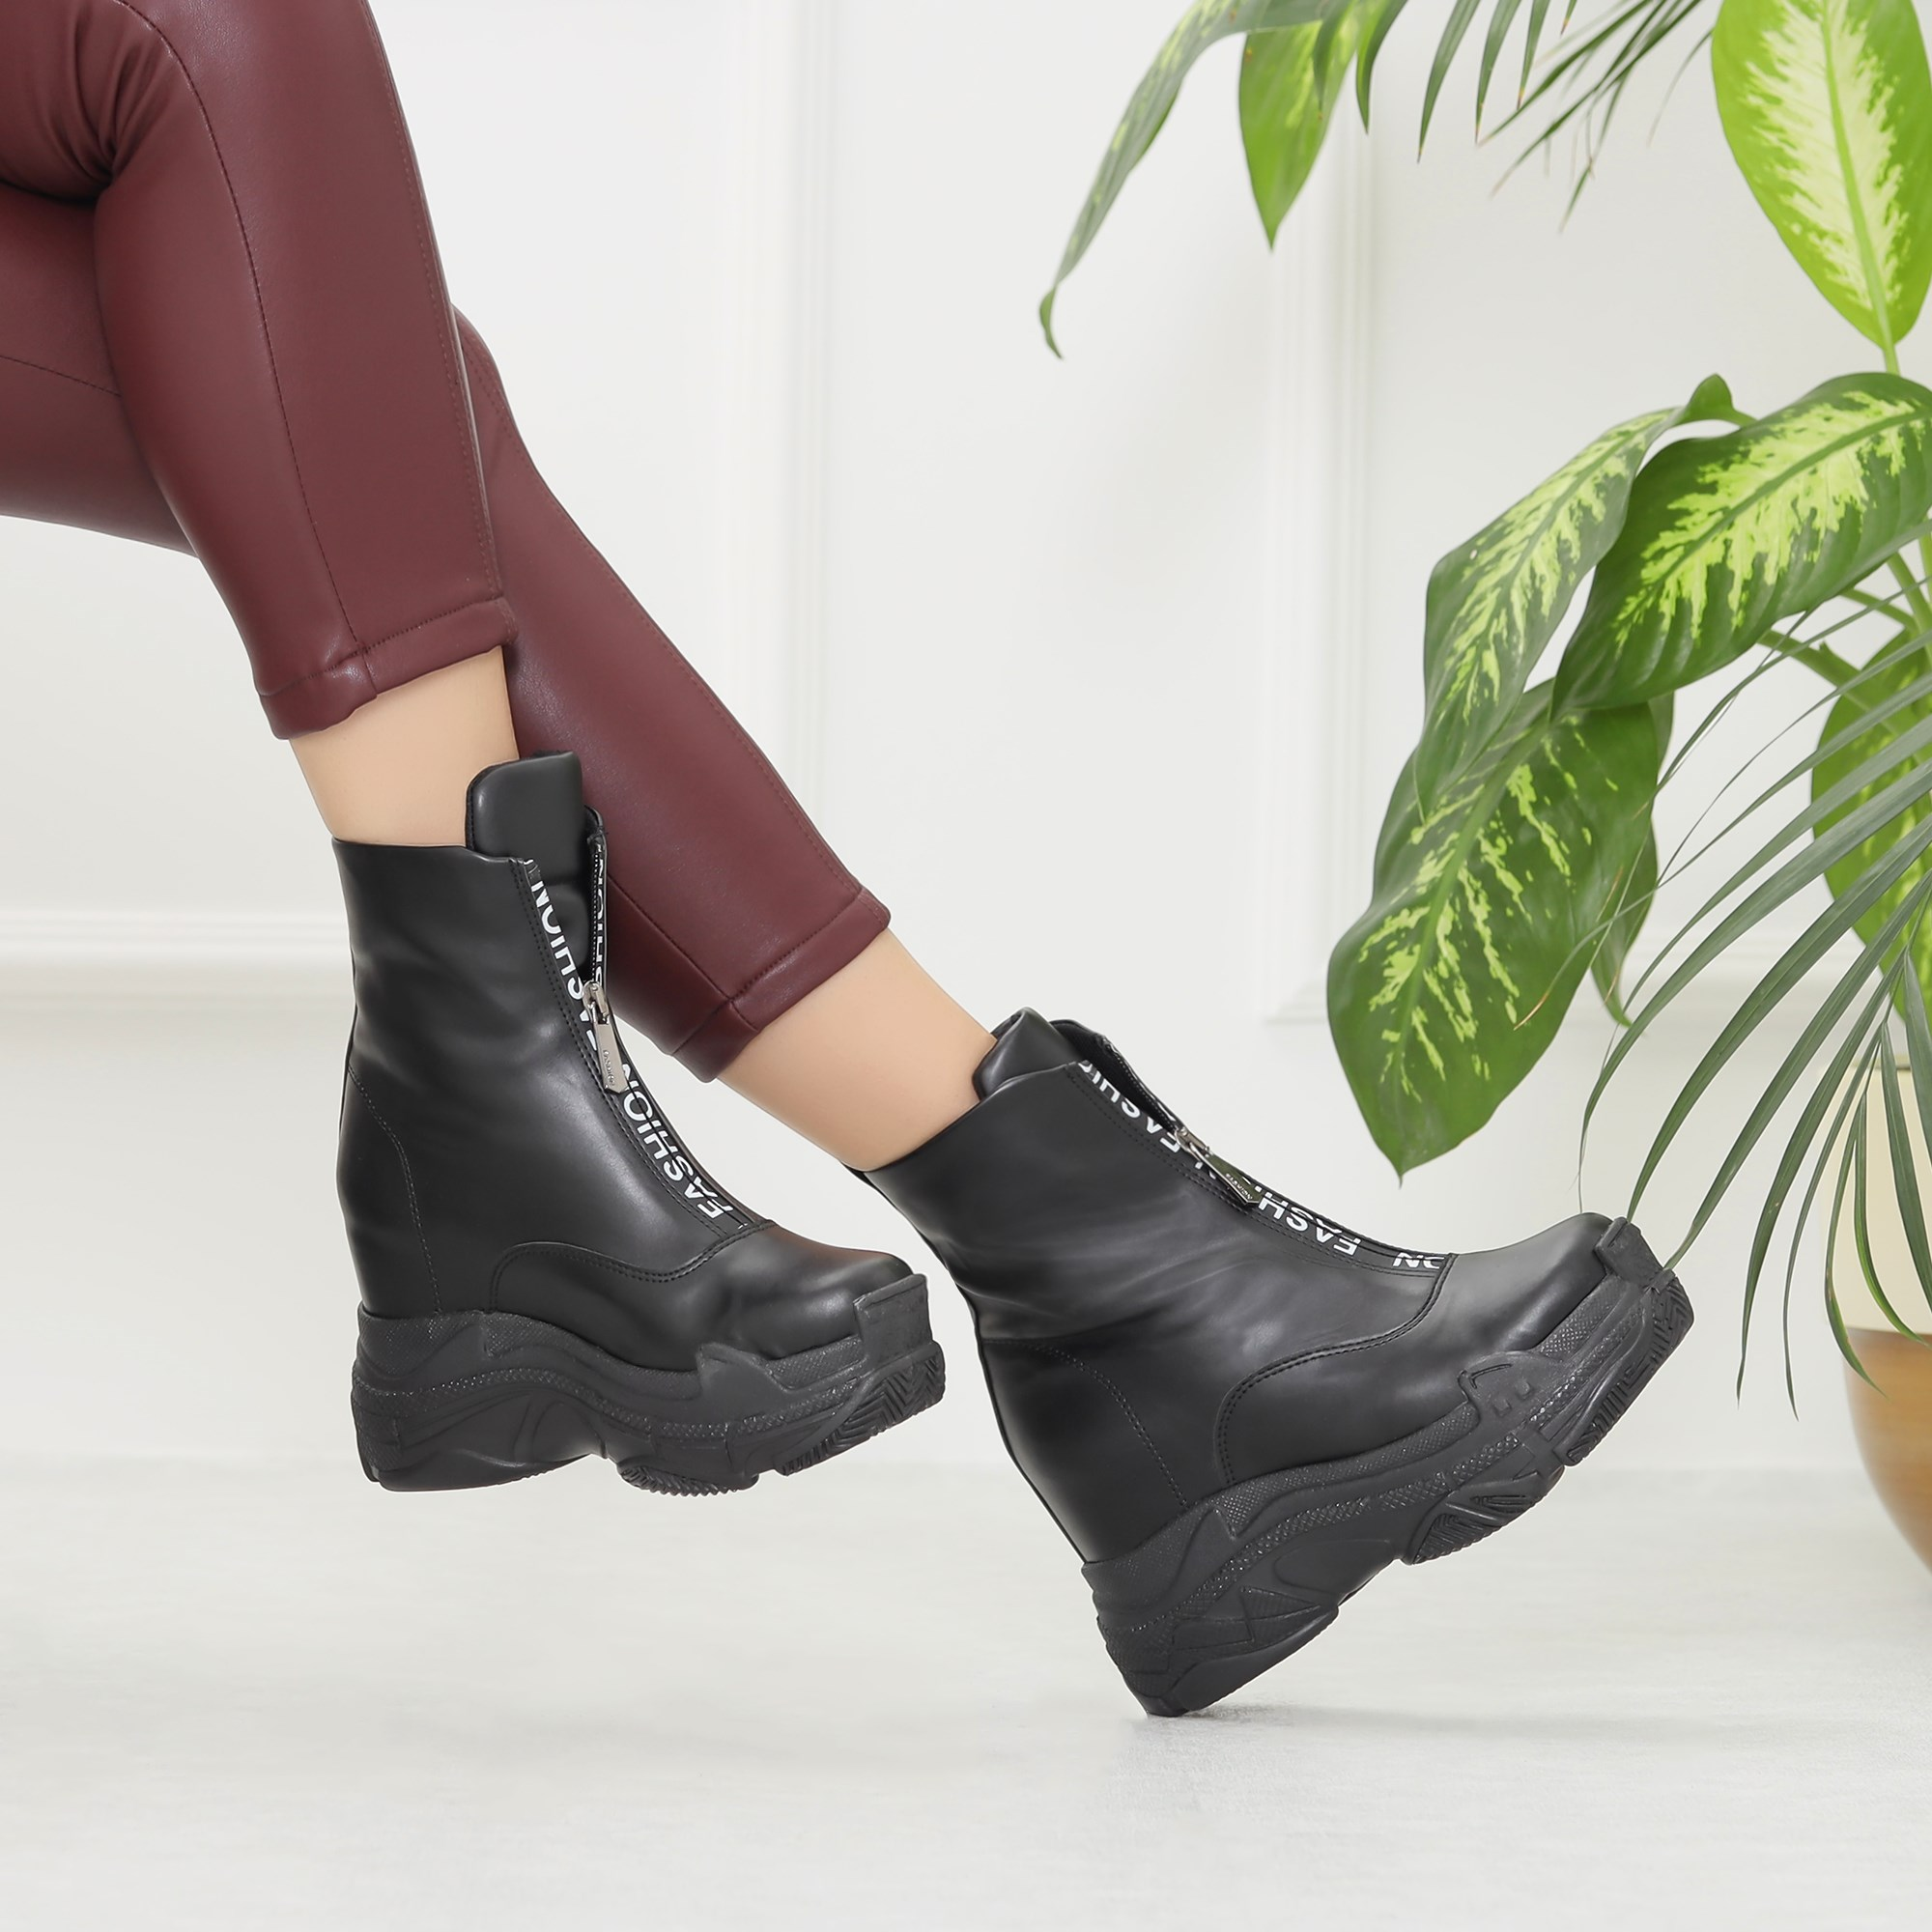 Nigonda Black Wedge Heeled Boots